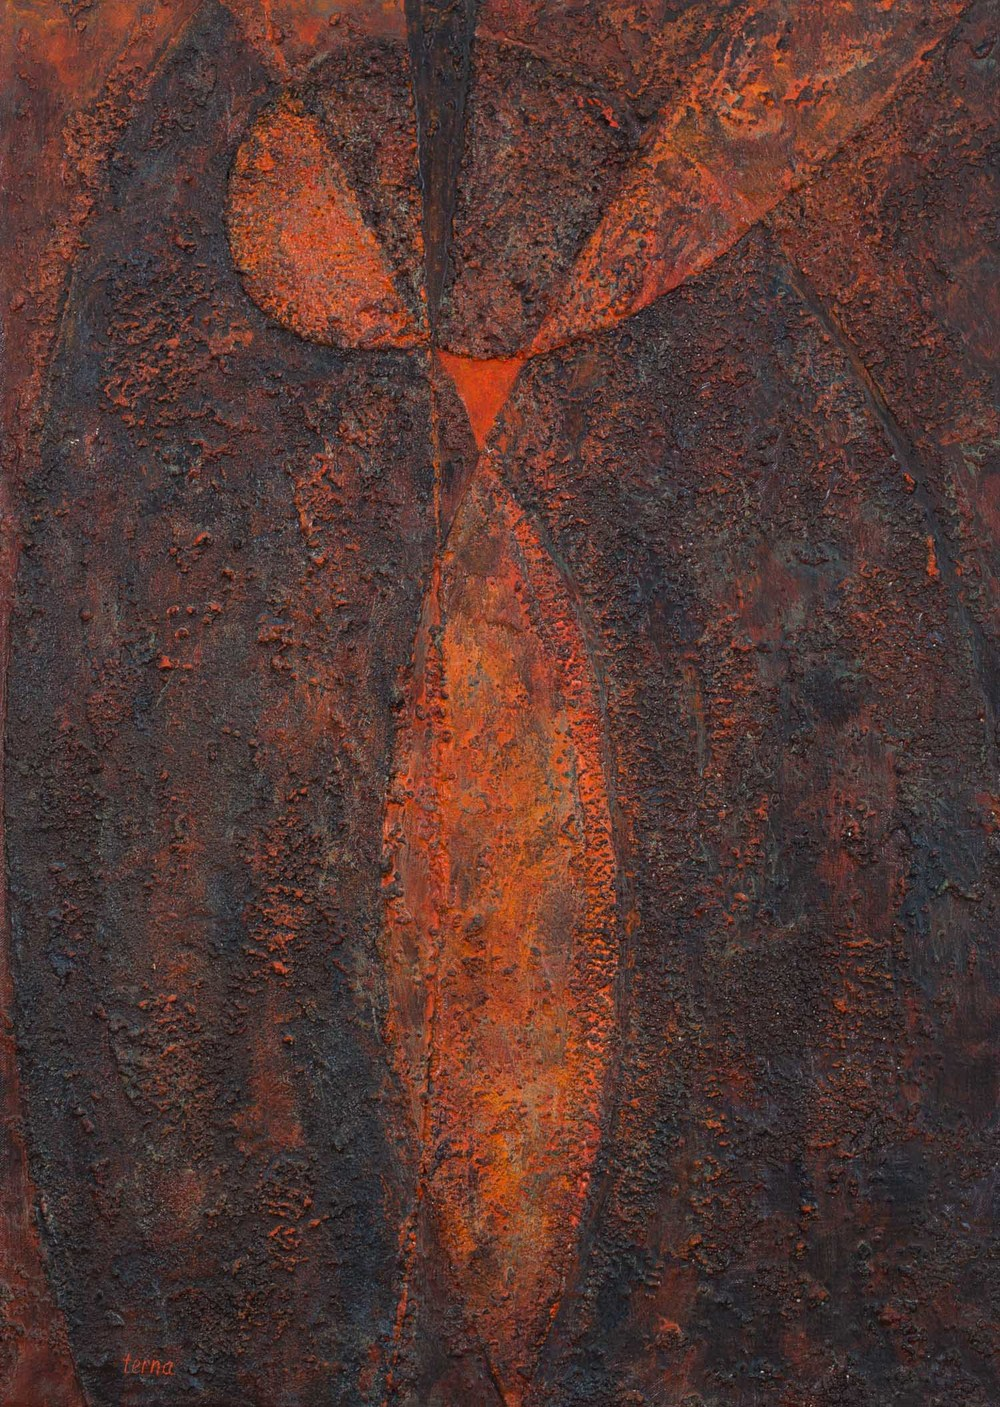 United by Fire  , November 1984, Acrylic and aggregate on canvas, 28 x 20 inches